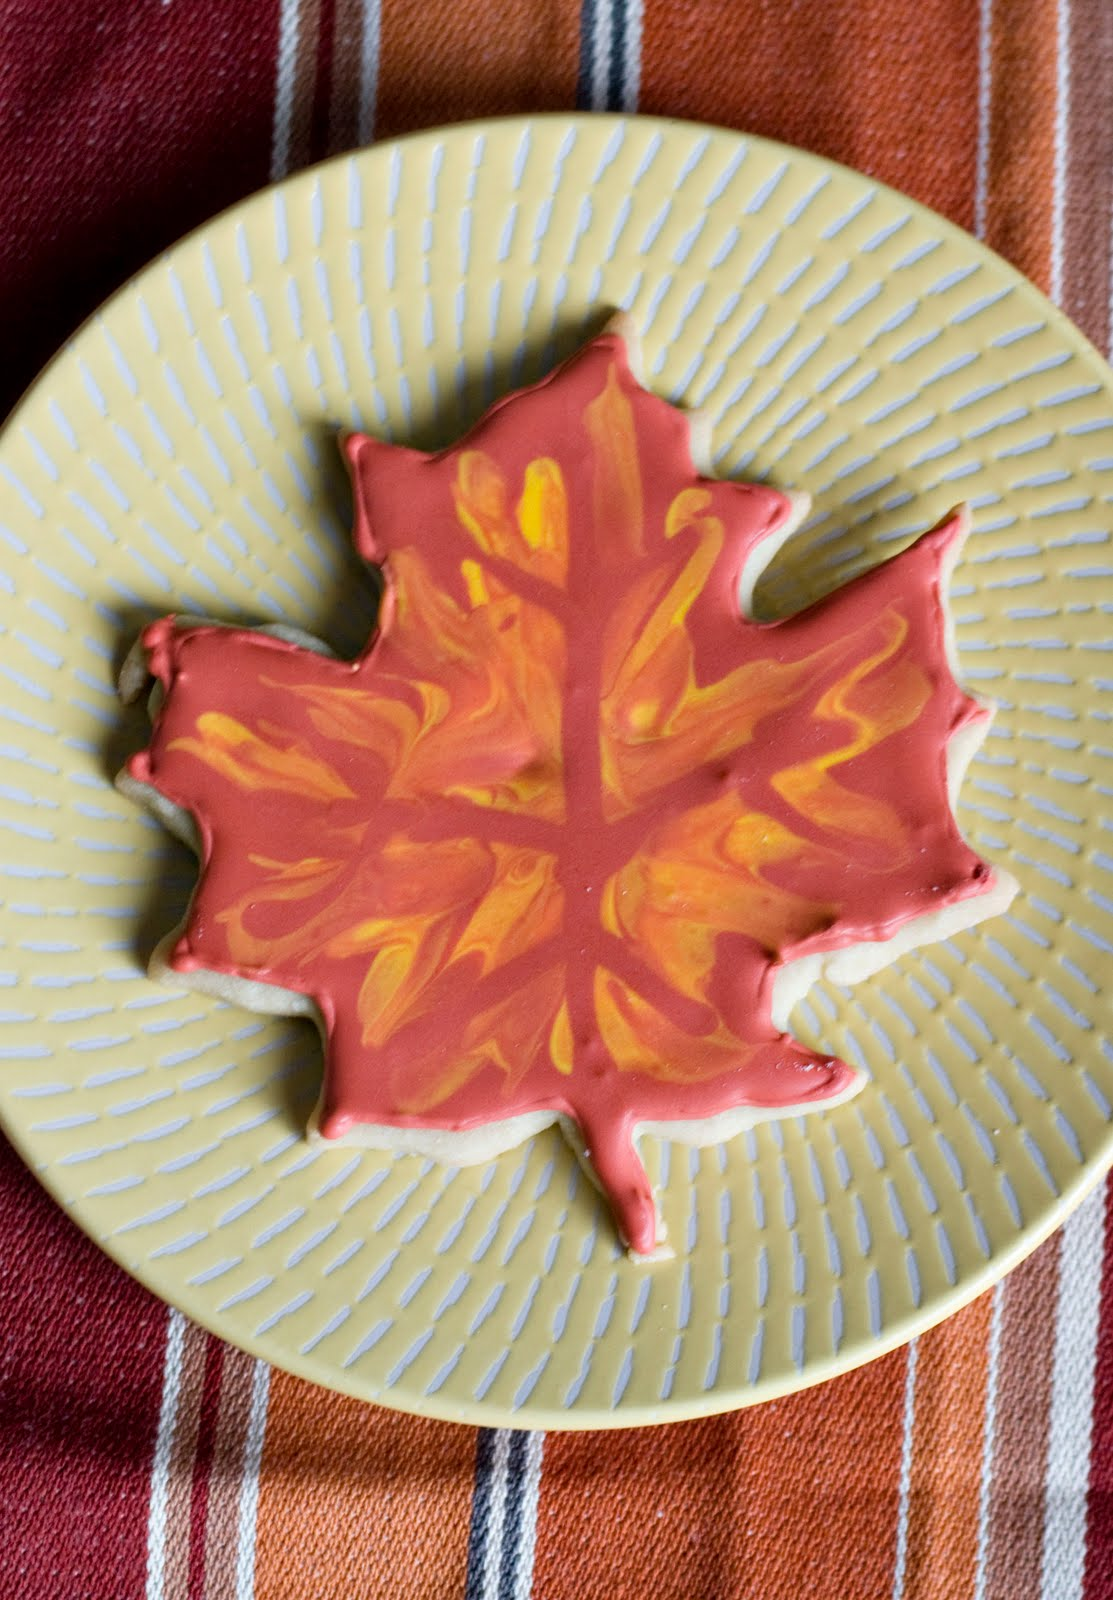 Erica's Sweet Tooth » Maple Leaf Cookies